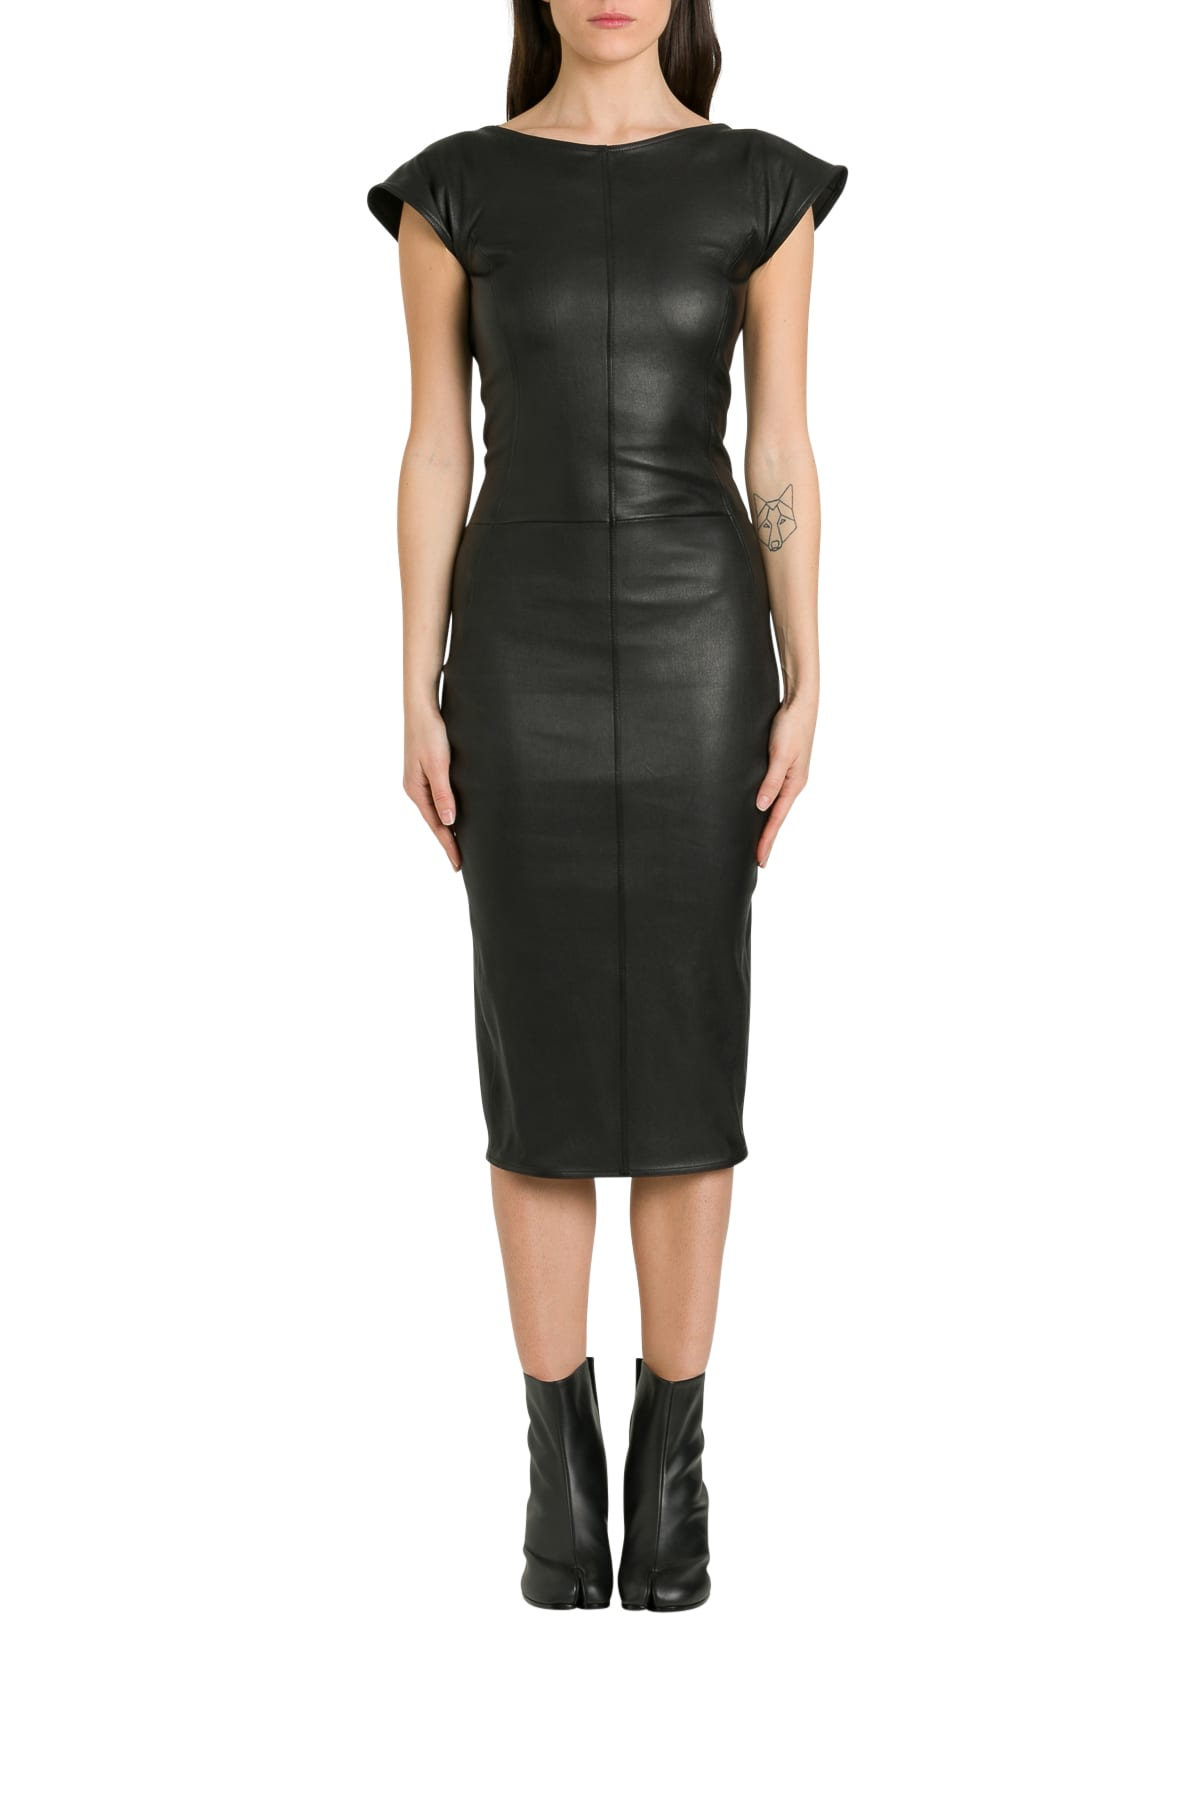 Buy Rick Owens Sarah Leather Dress With Back Neckline online, shop Rick Owens with free shipping